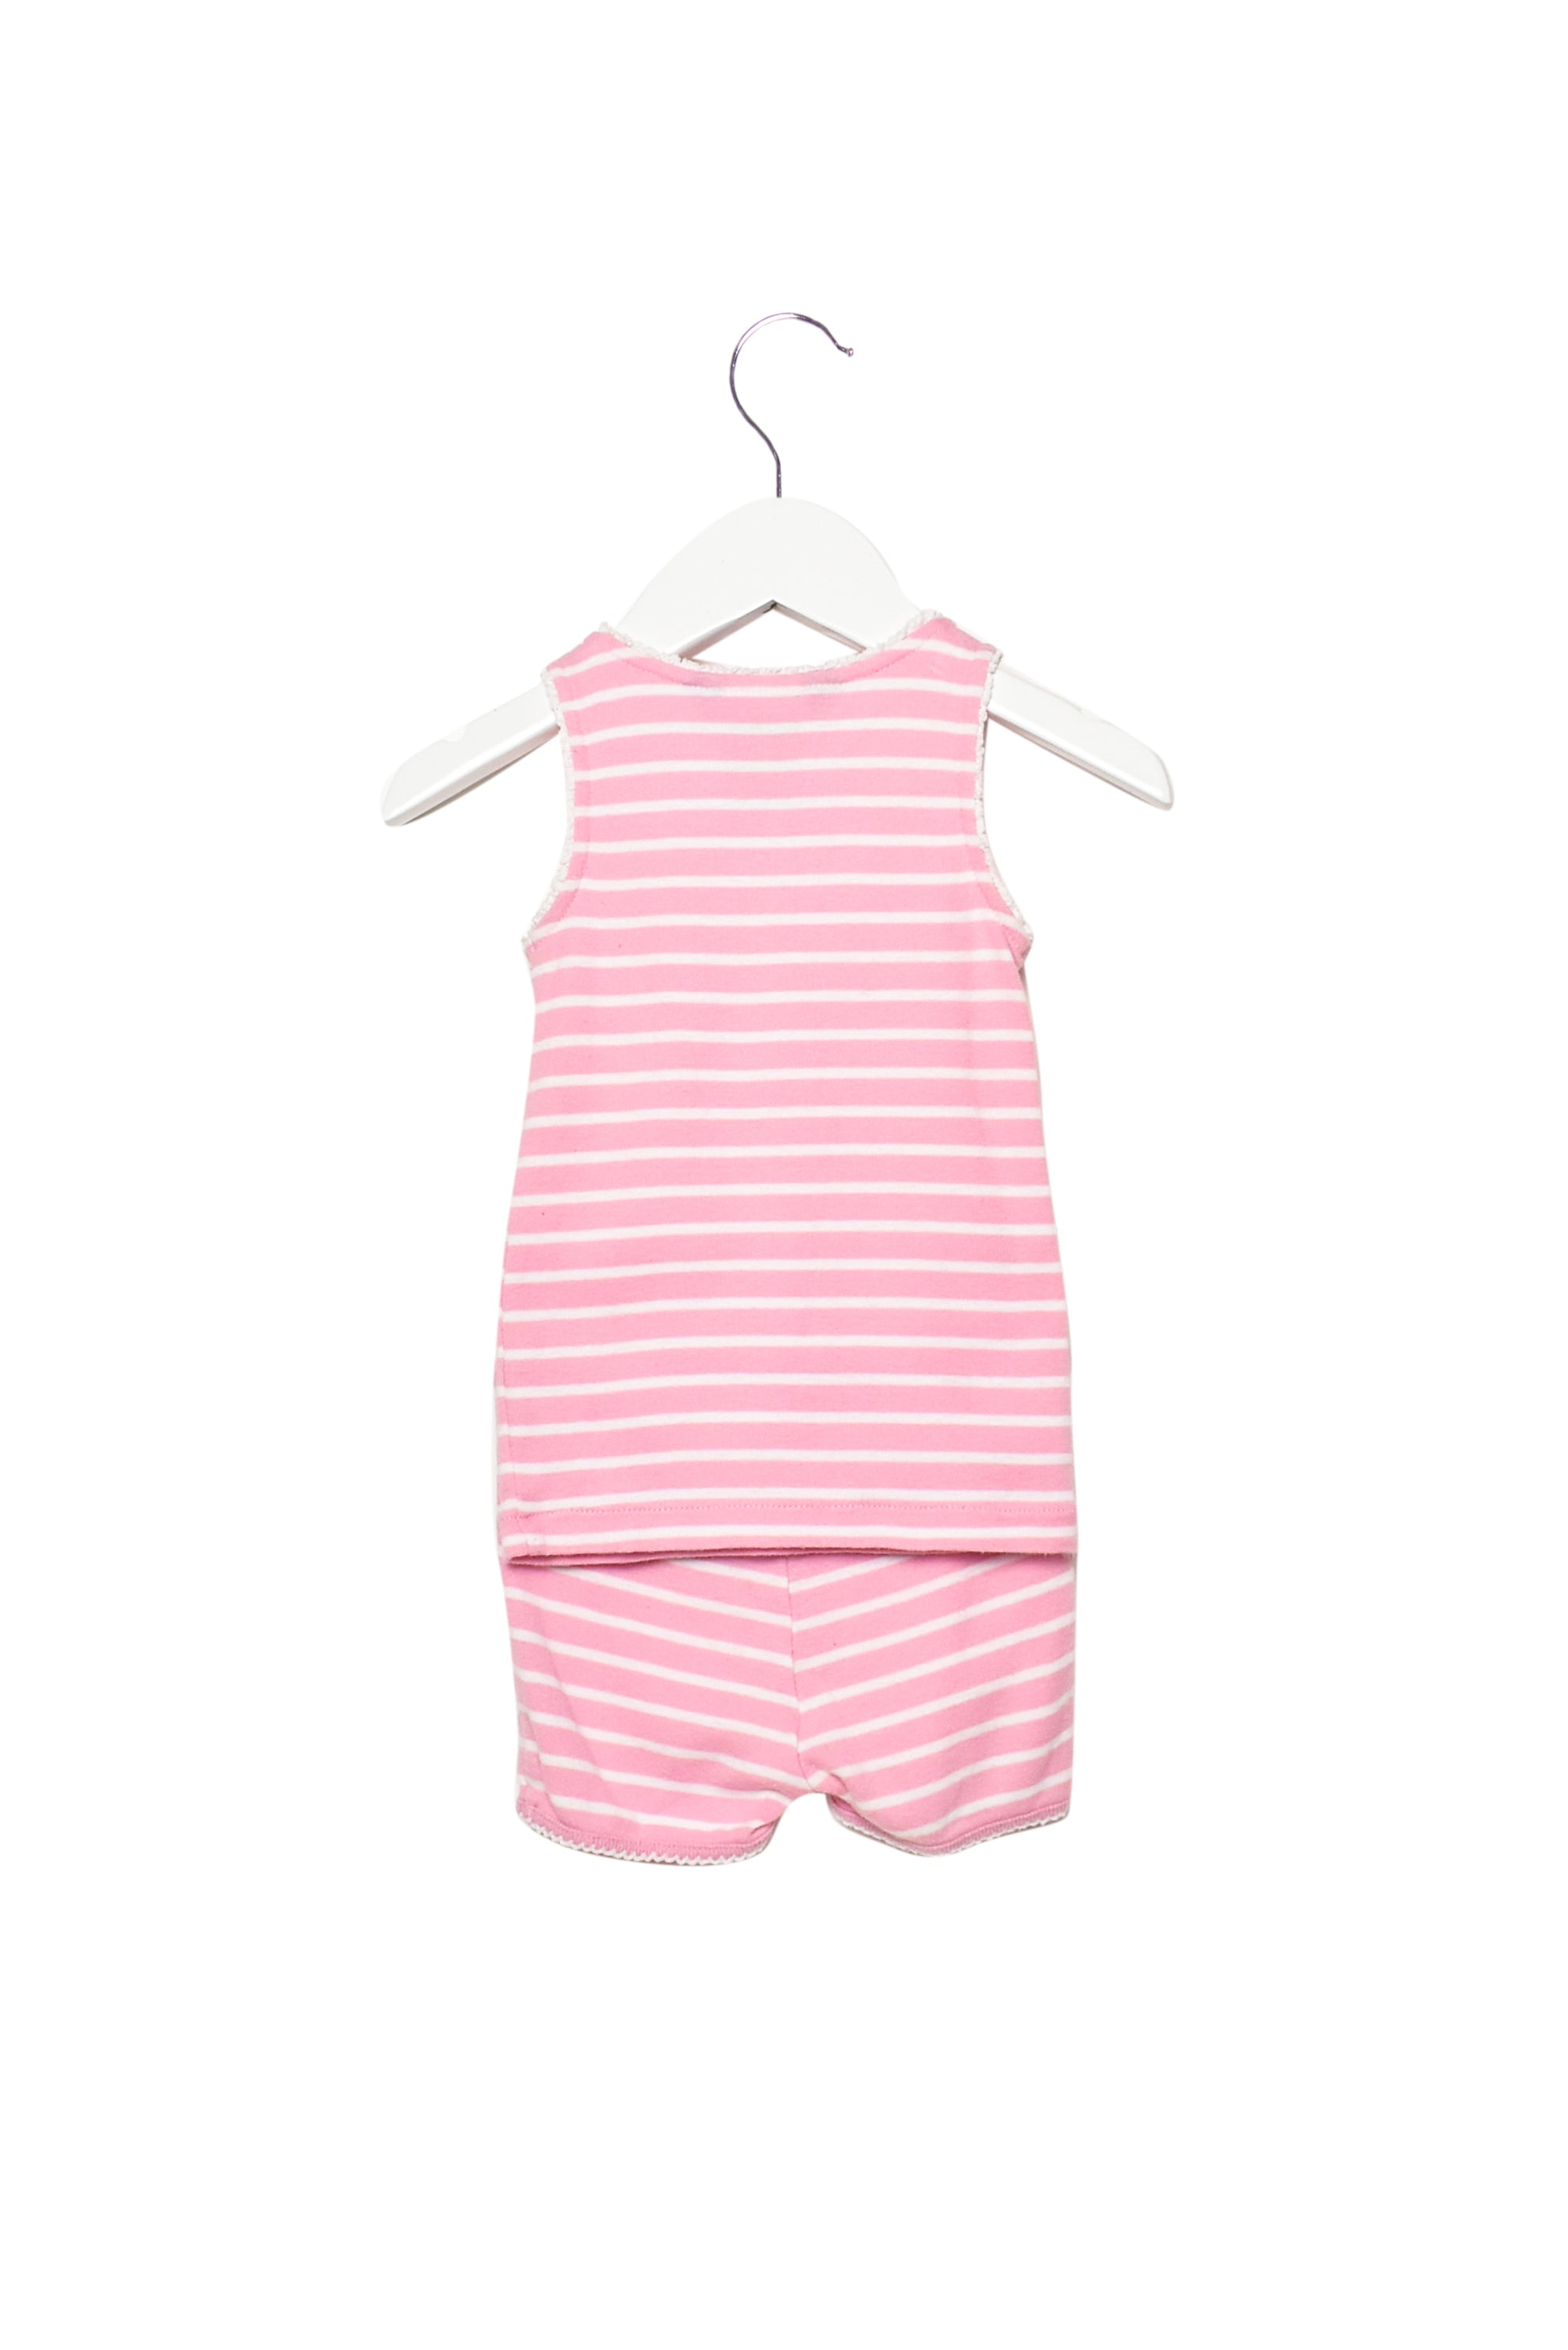 10012055 Ralph Lauren Baby~Tank and Shorts Set 12M at Retykle